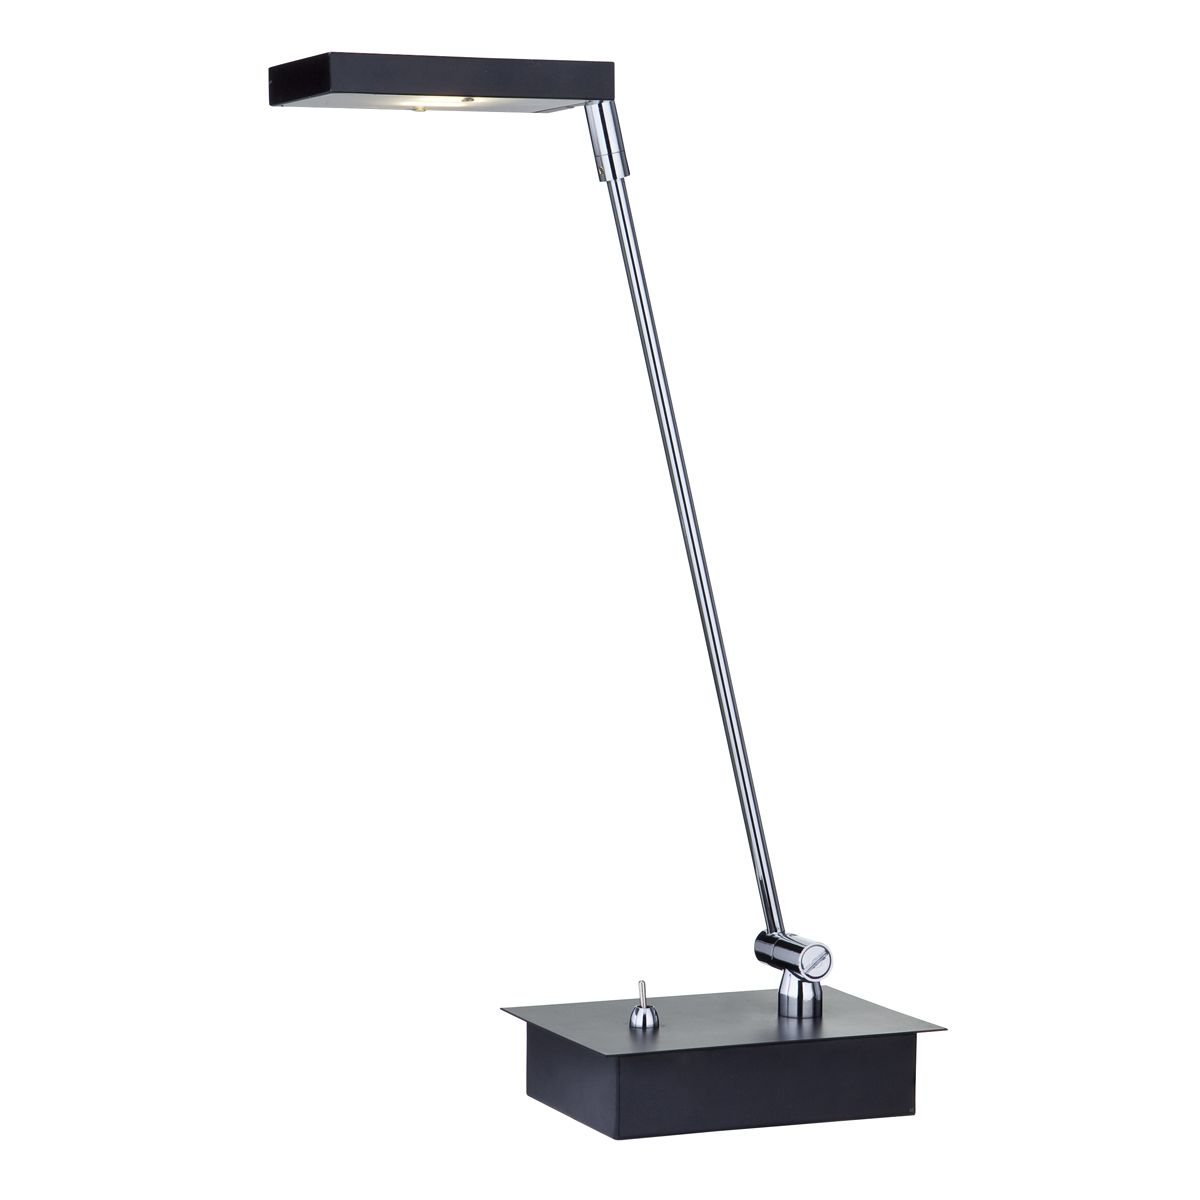 Chrome 12 Led Table Lamp With Square Black Shade, Eu Plug